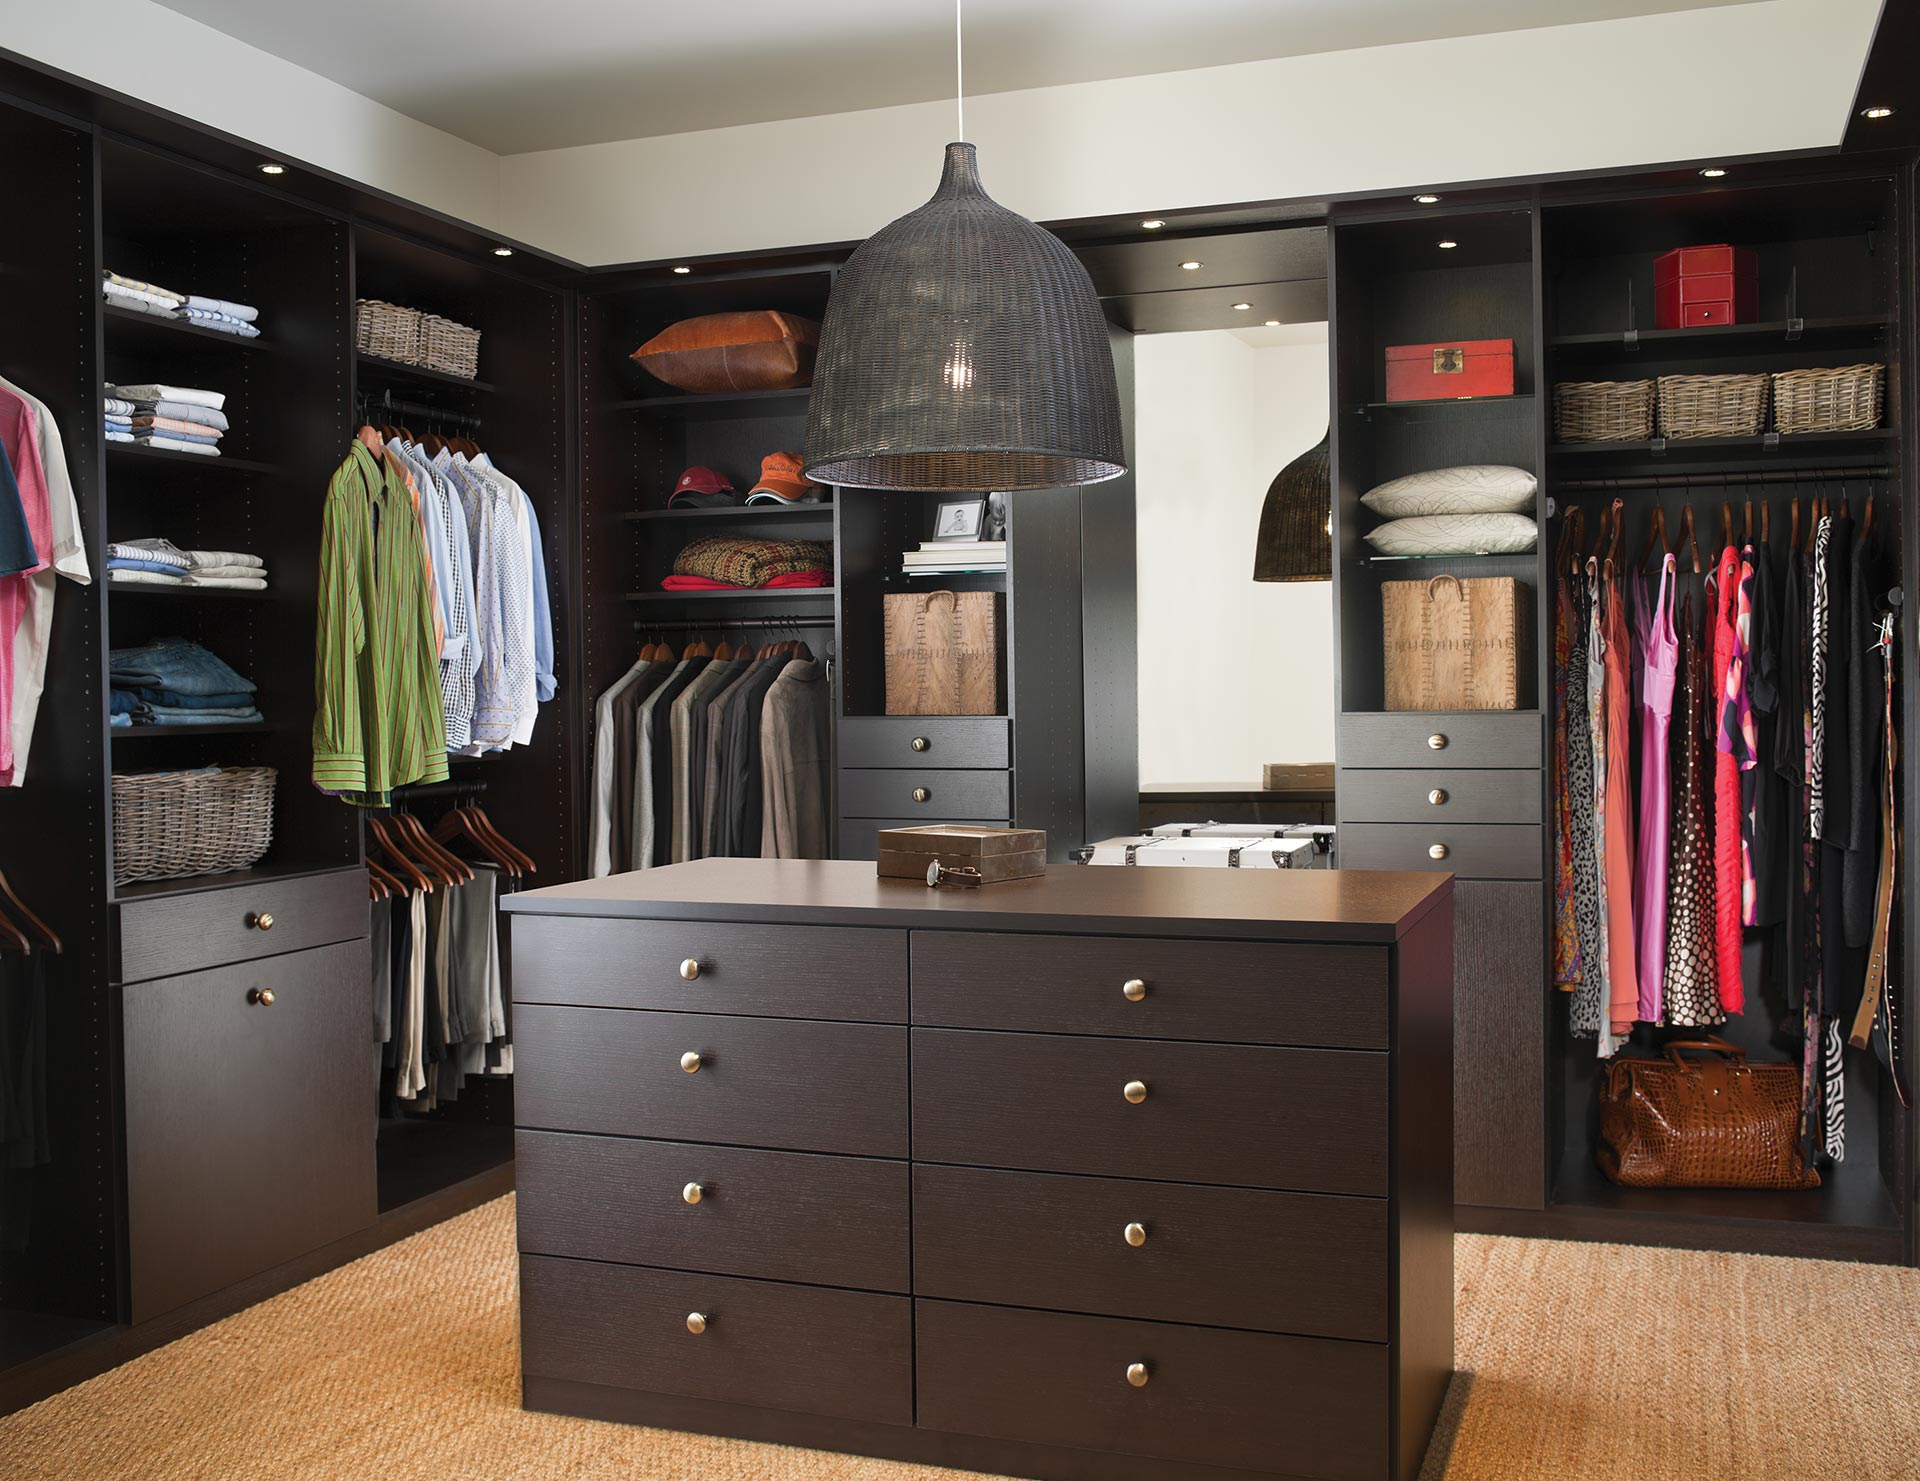 Photo Walk-in Garde-robe Walk In Closet Systems Walk In Closet Design Ideas California